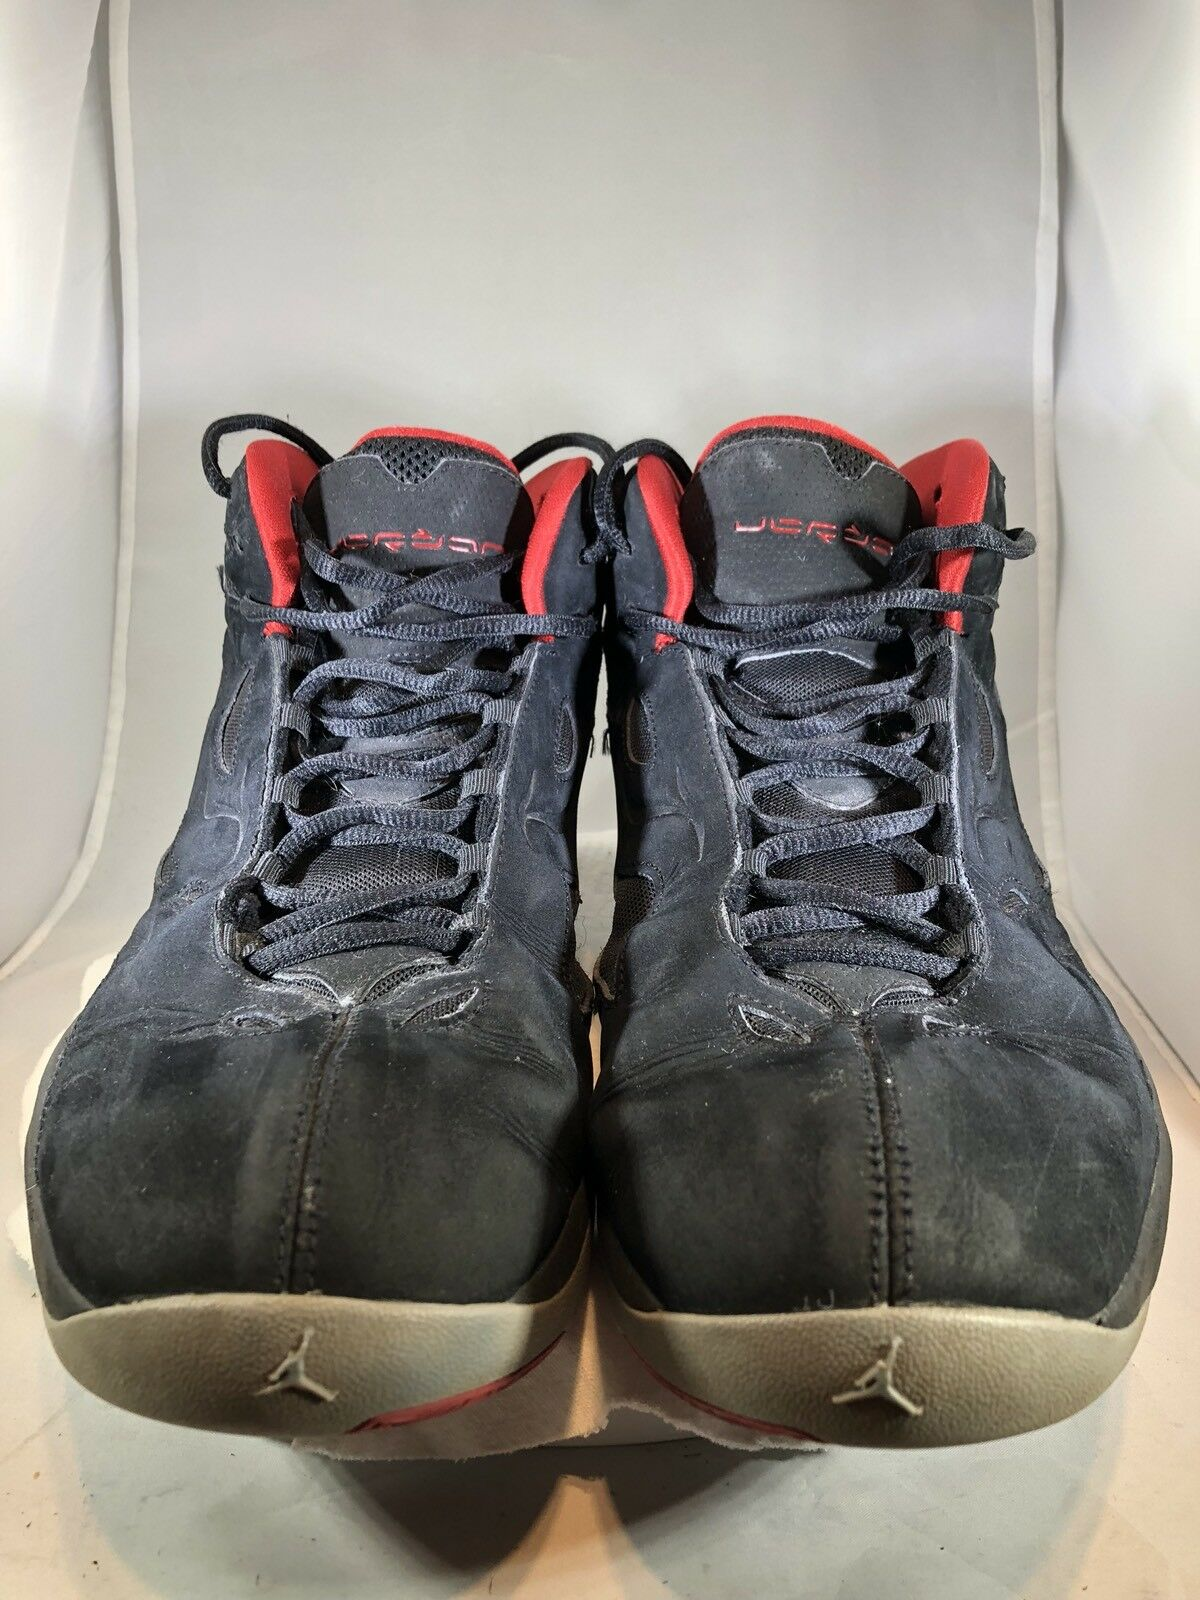 Nike Air Jordan (Black/Varsity Red-Stealth 364808-061- Comfortable The latest discount shoes for men and women